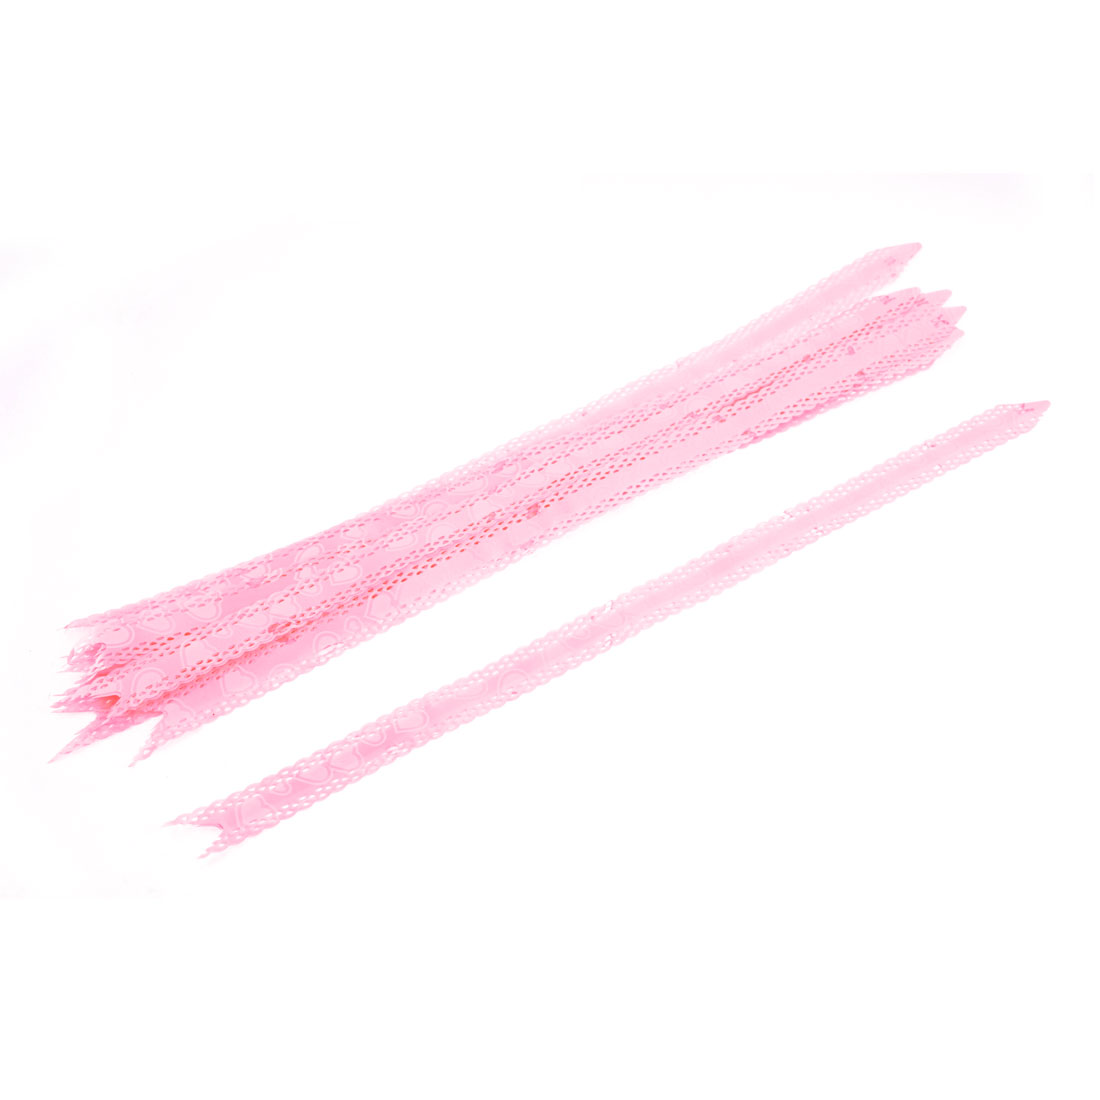 10 Pcs 18mm Width DIY Decorative Pull Flower Ribbon Gift Wrap Pink